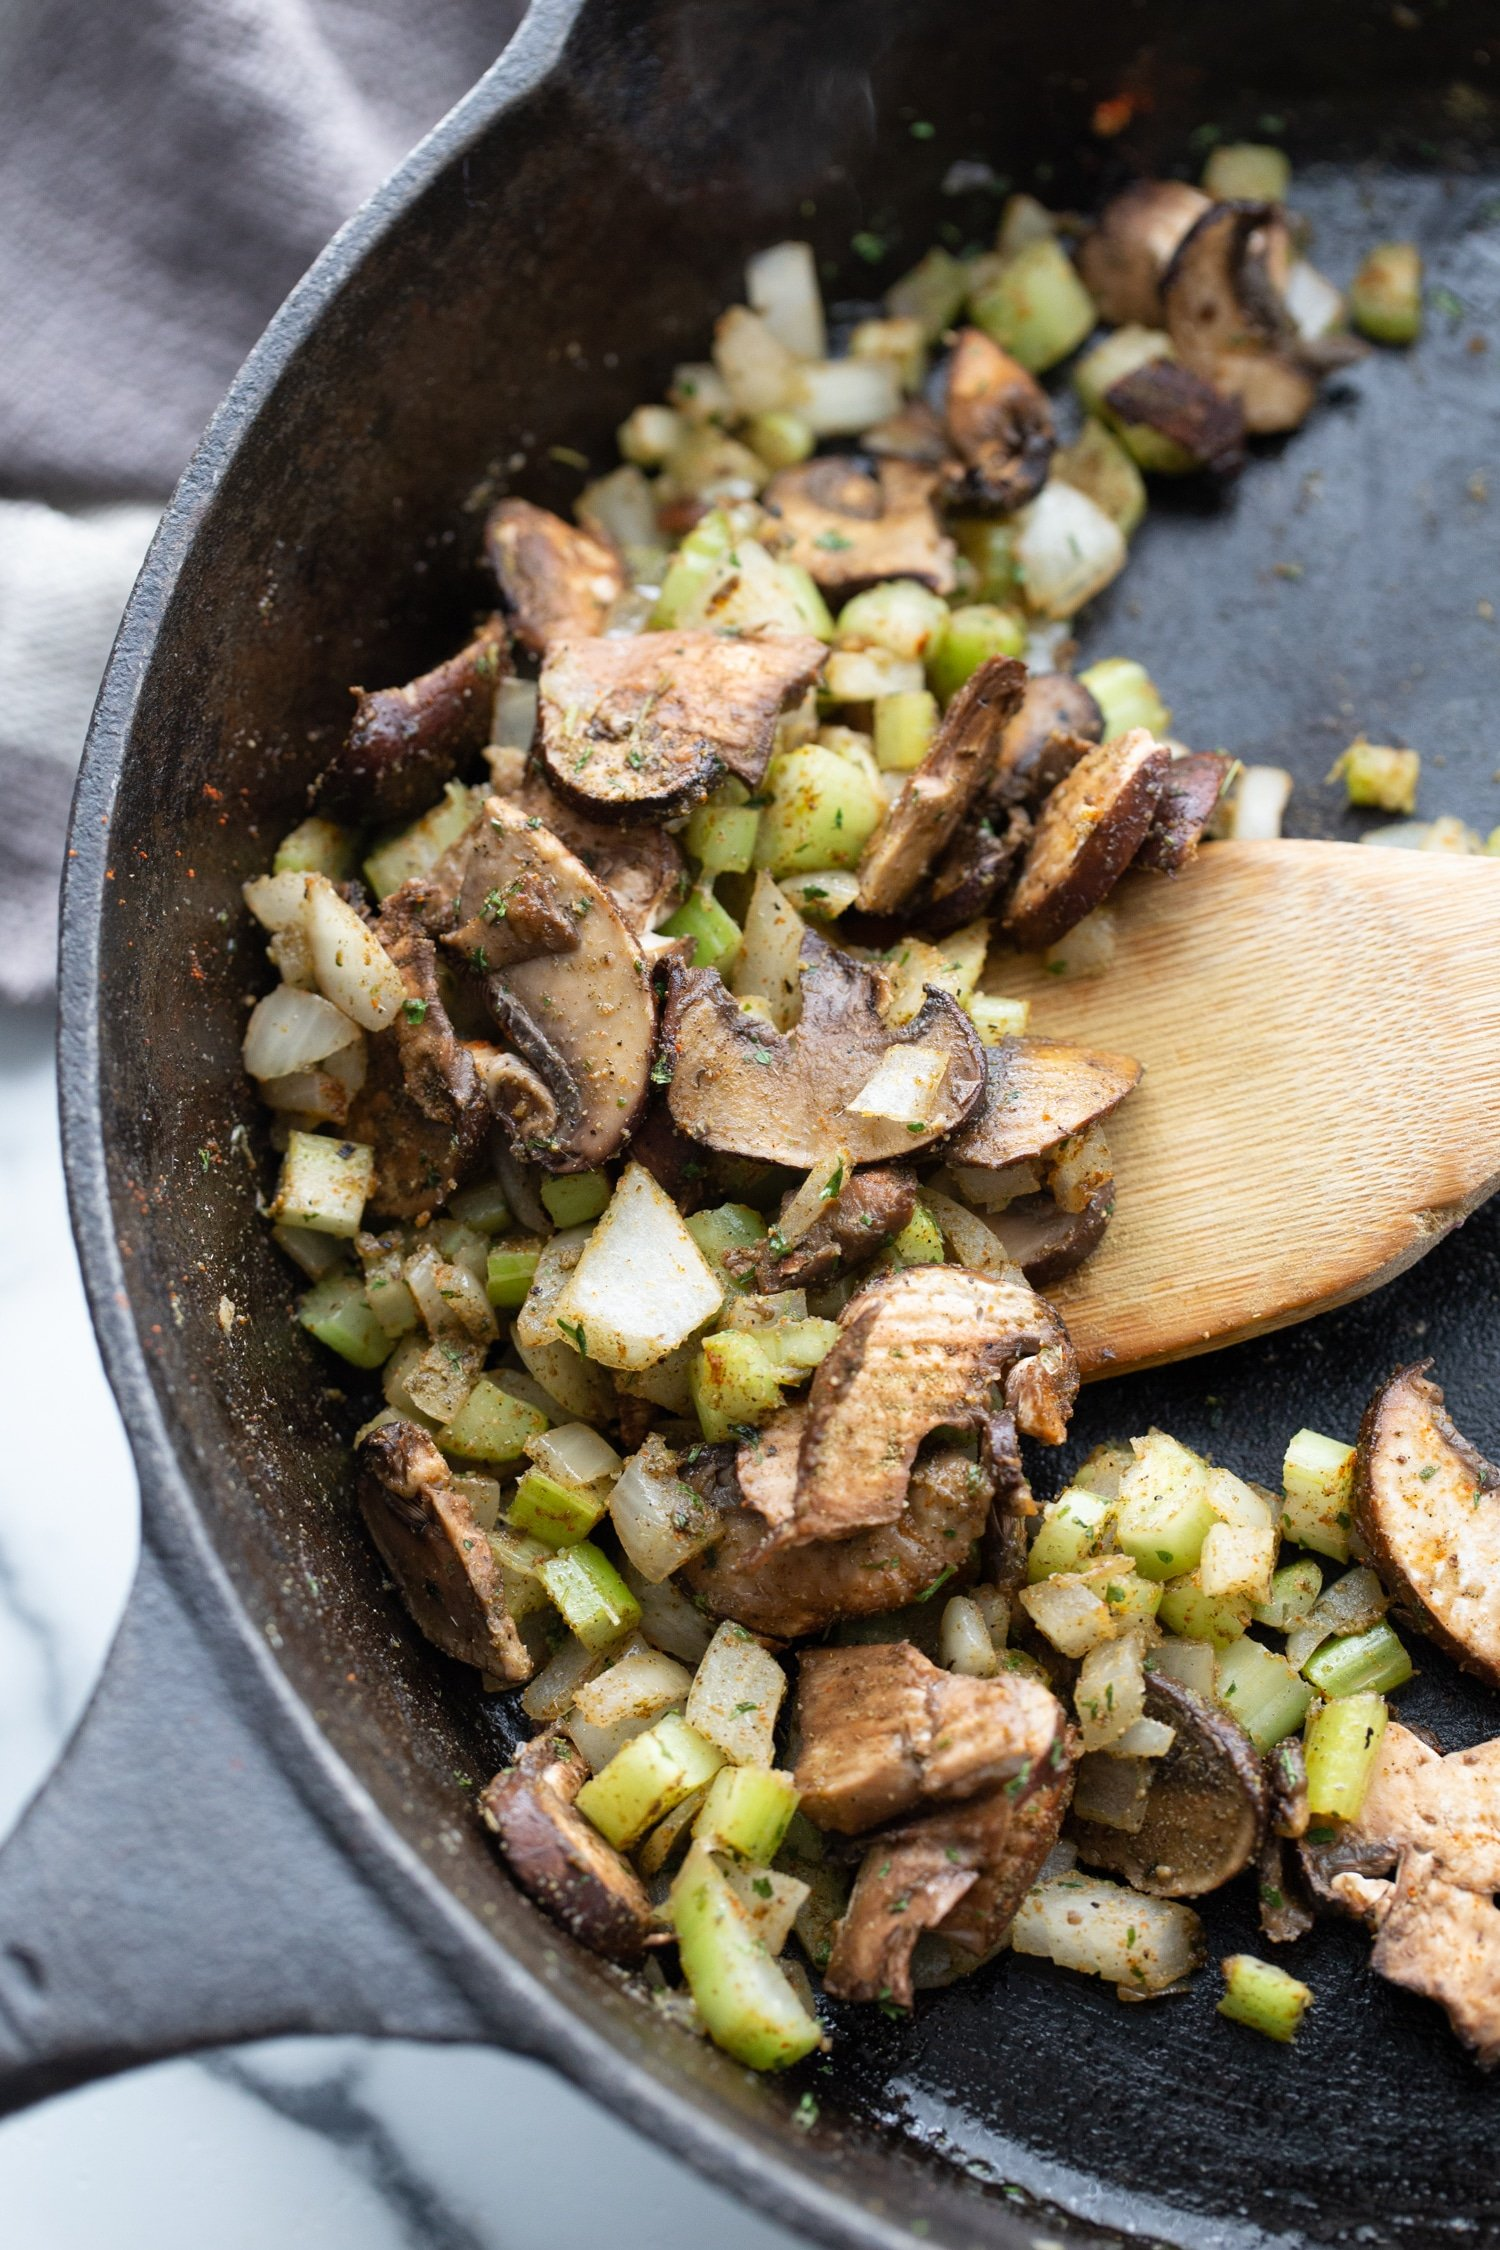 celery, onions and mushrooms in a skillet